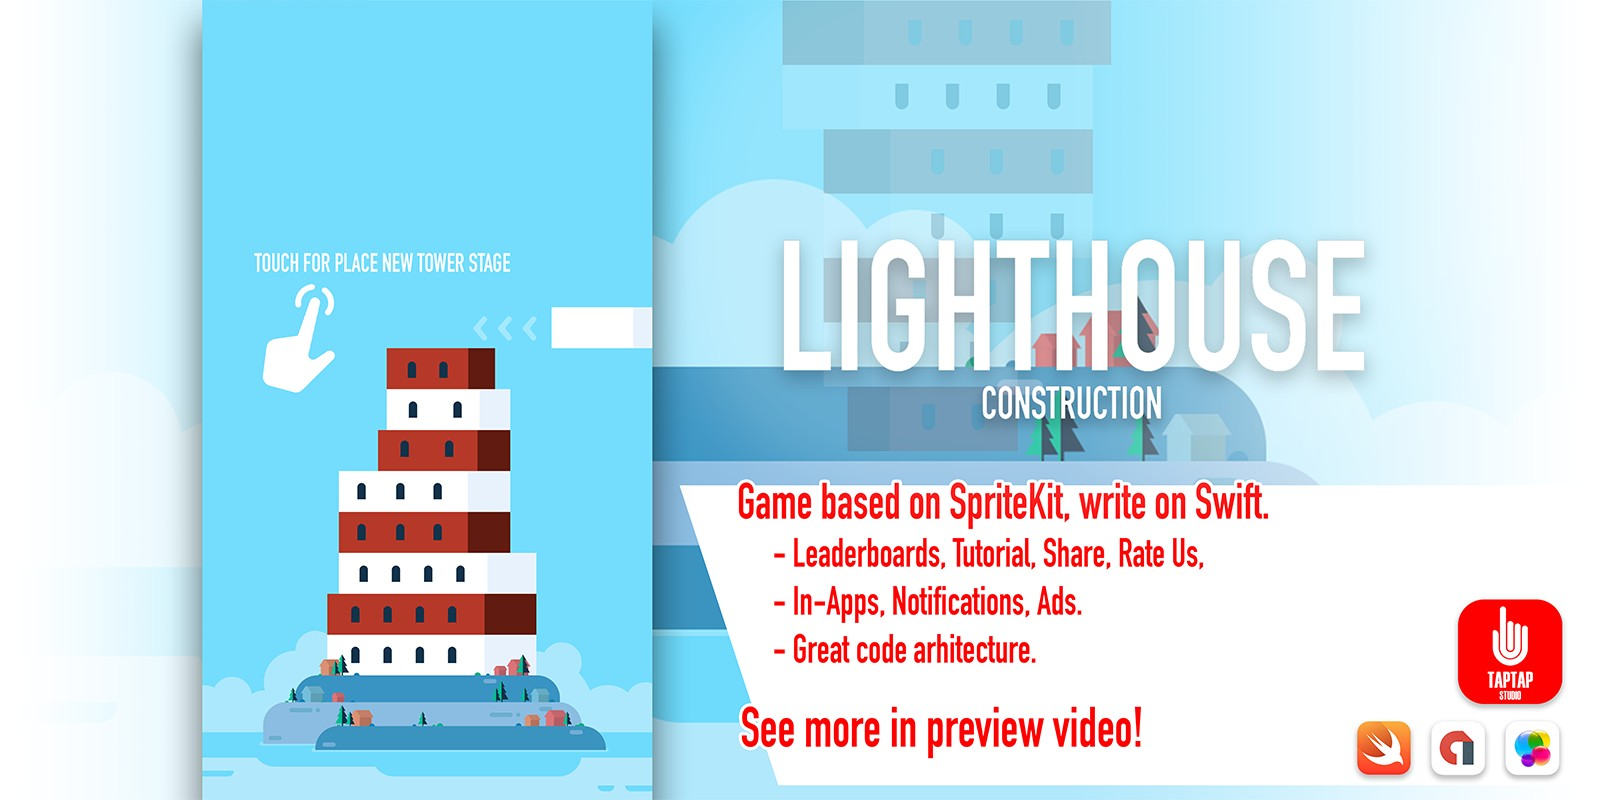 Lighthouse Construction - iOS App Source Code